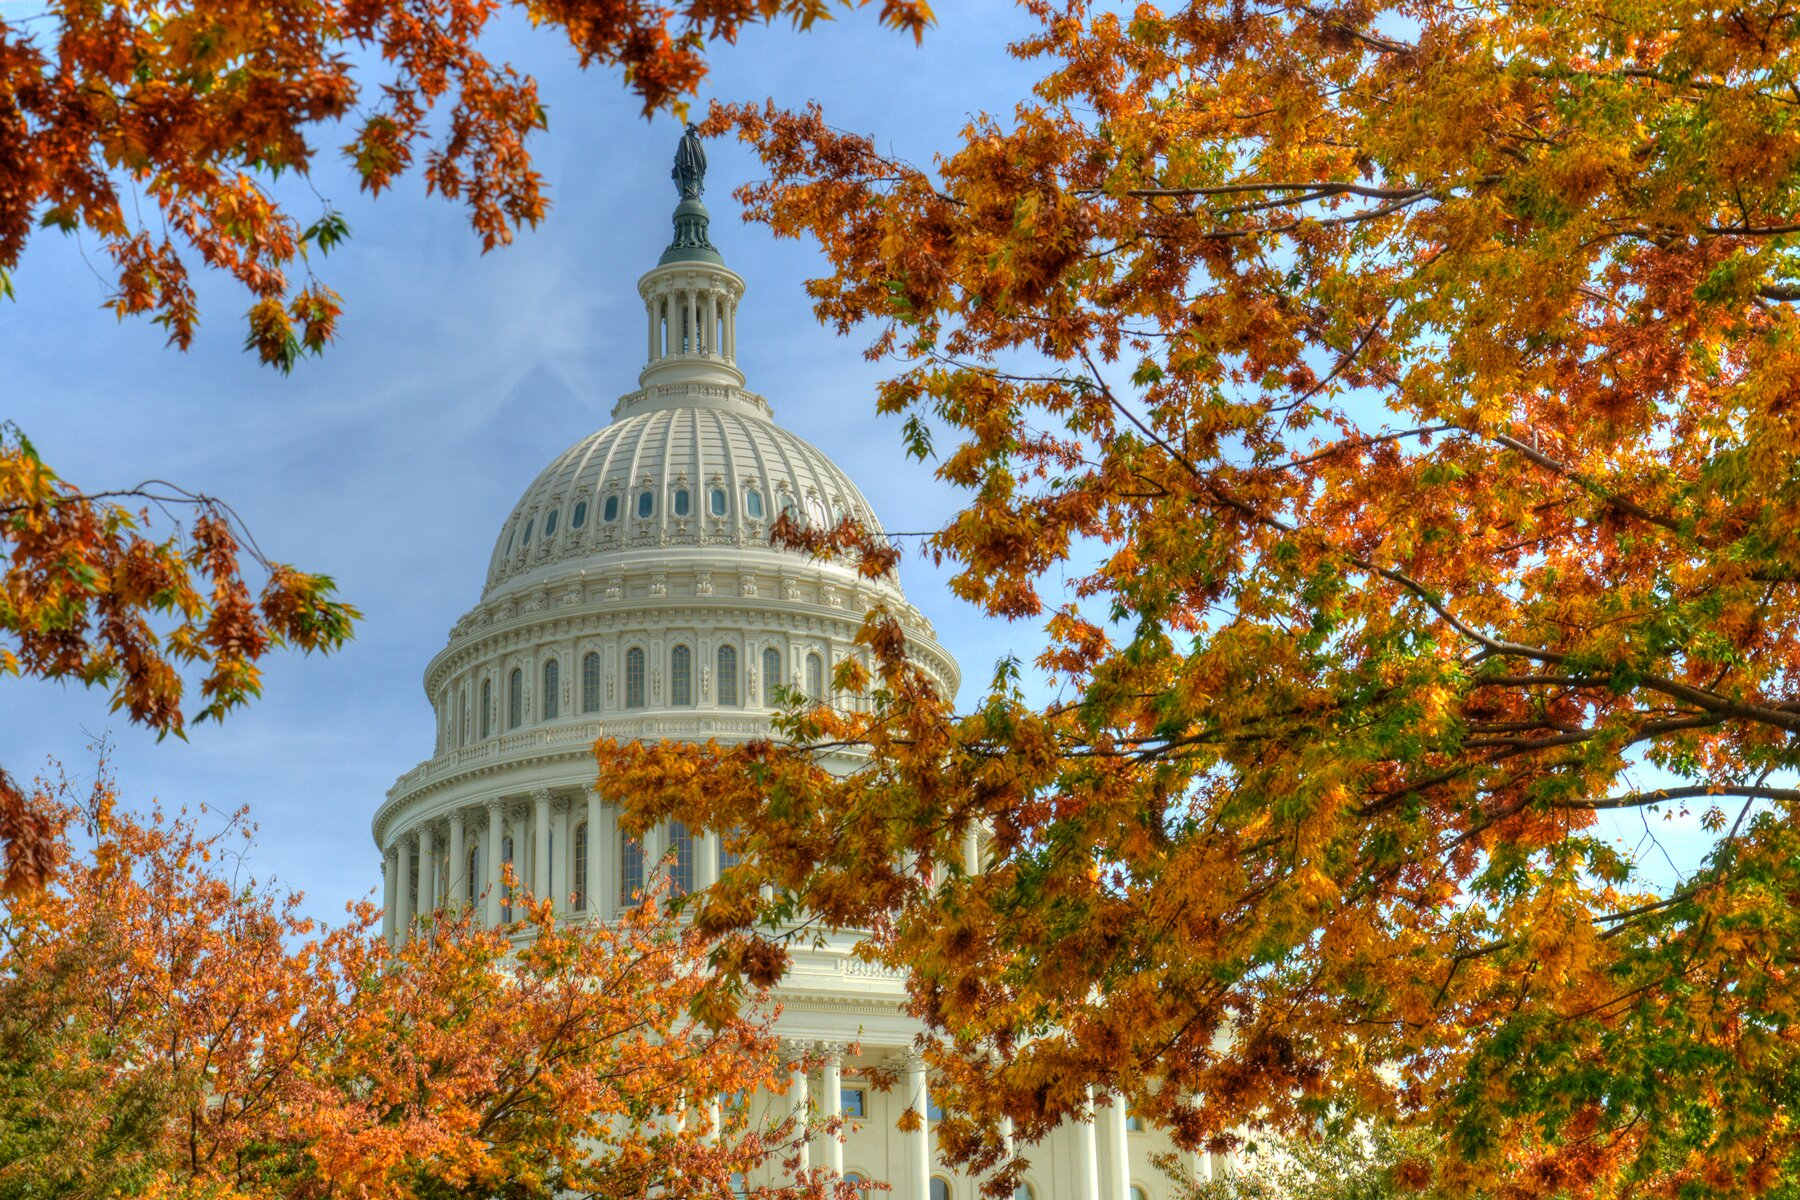 U.S. Capitol Building seen through autumn leaves in Washington, D.C.